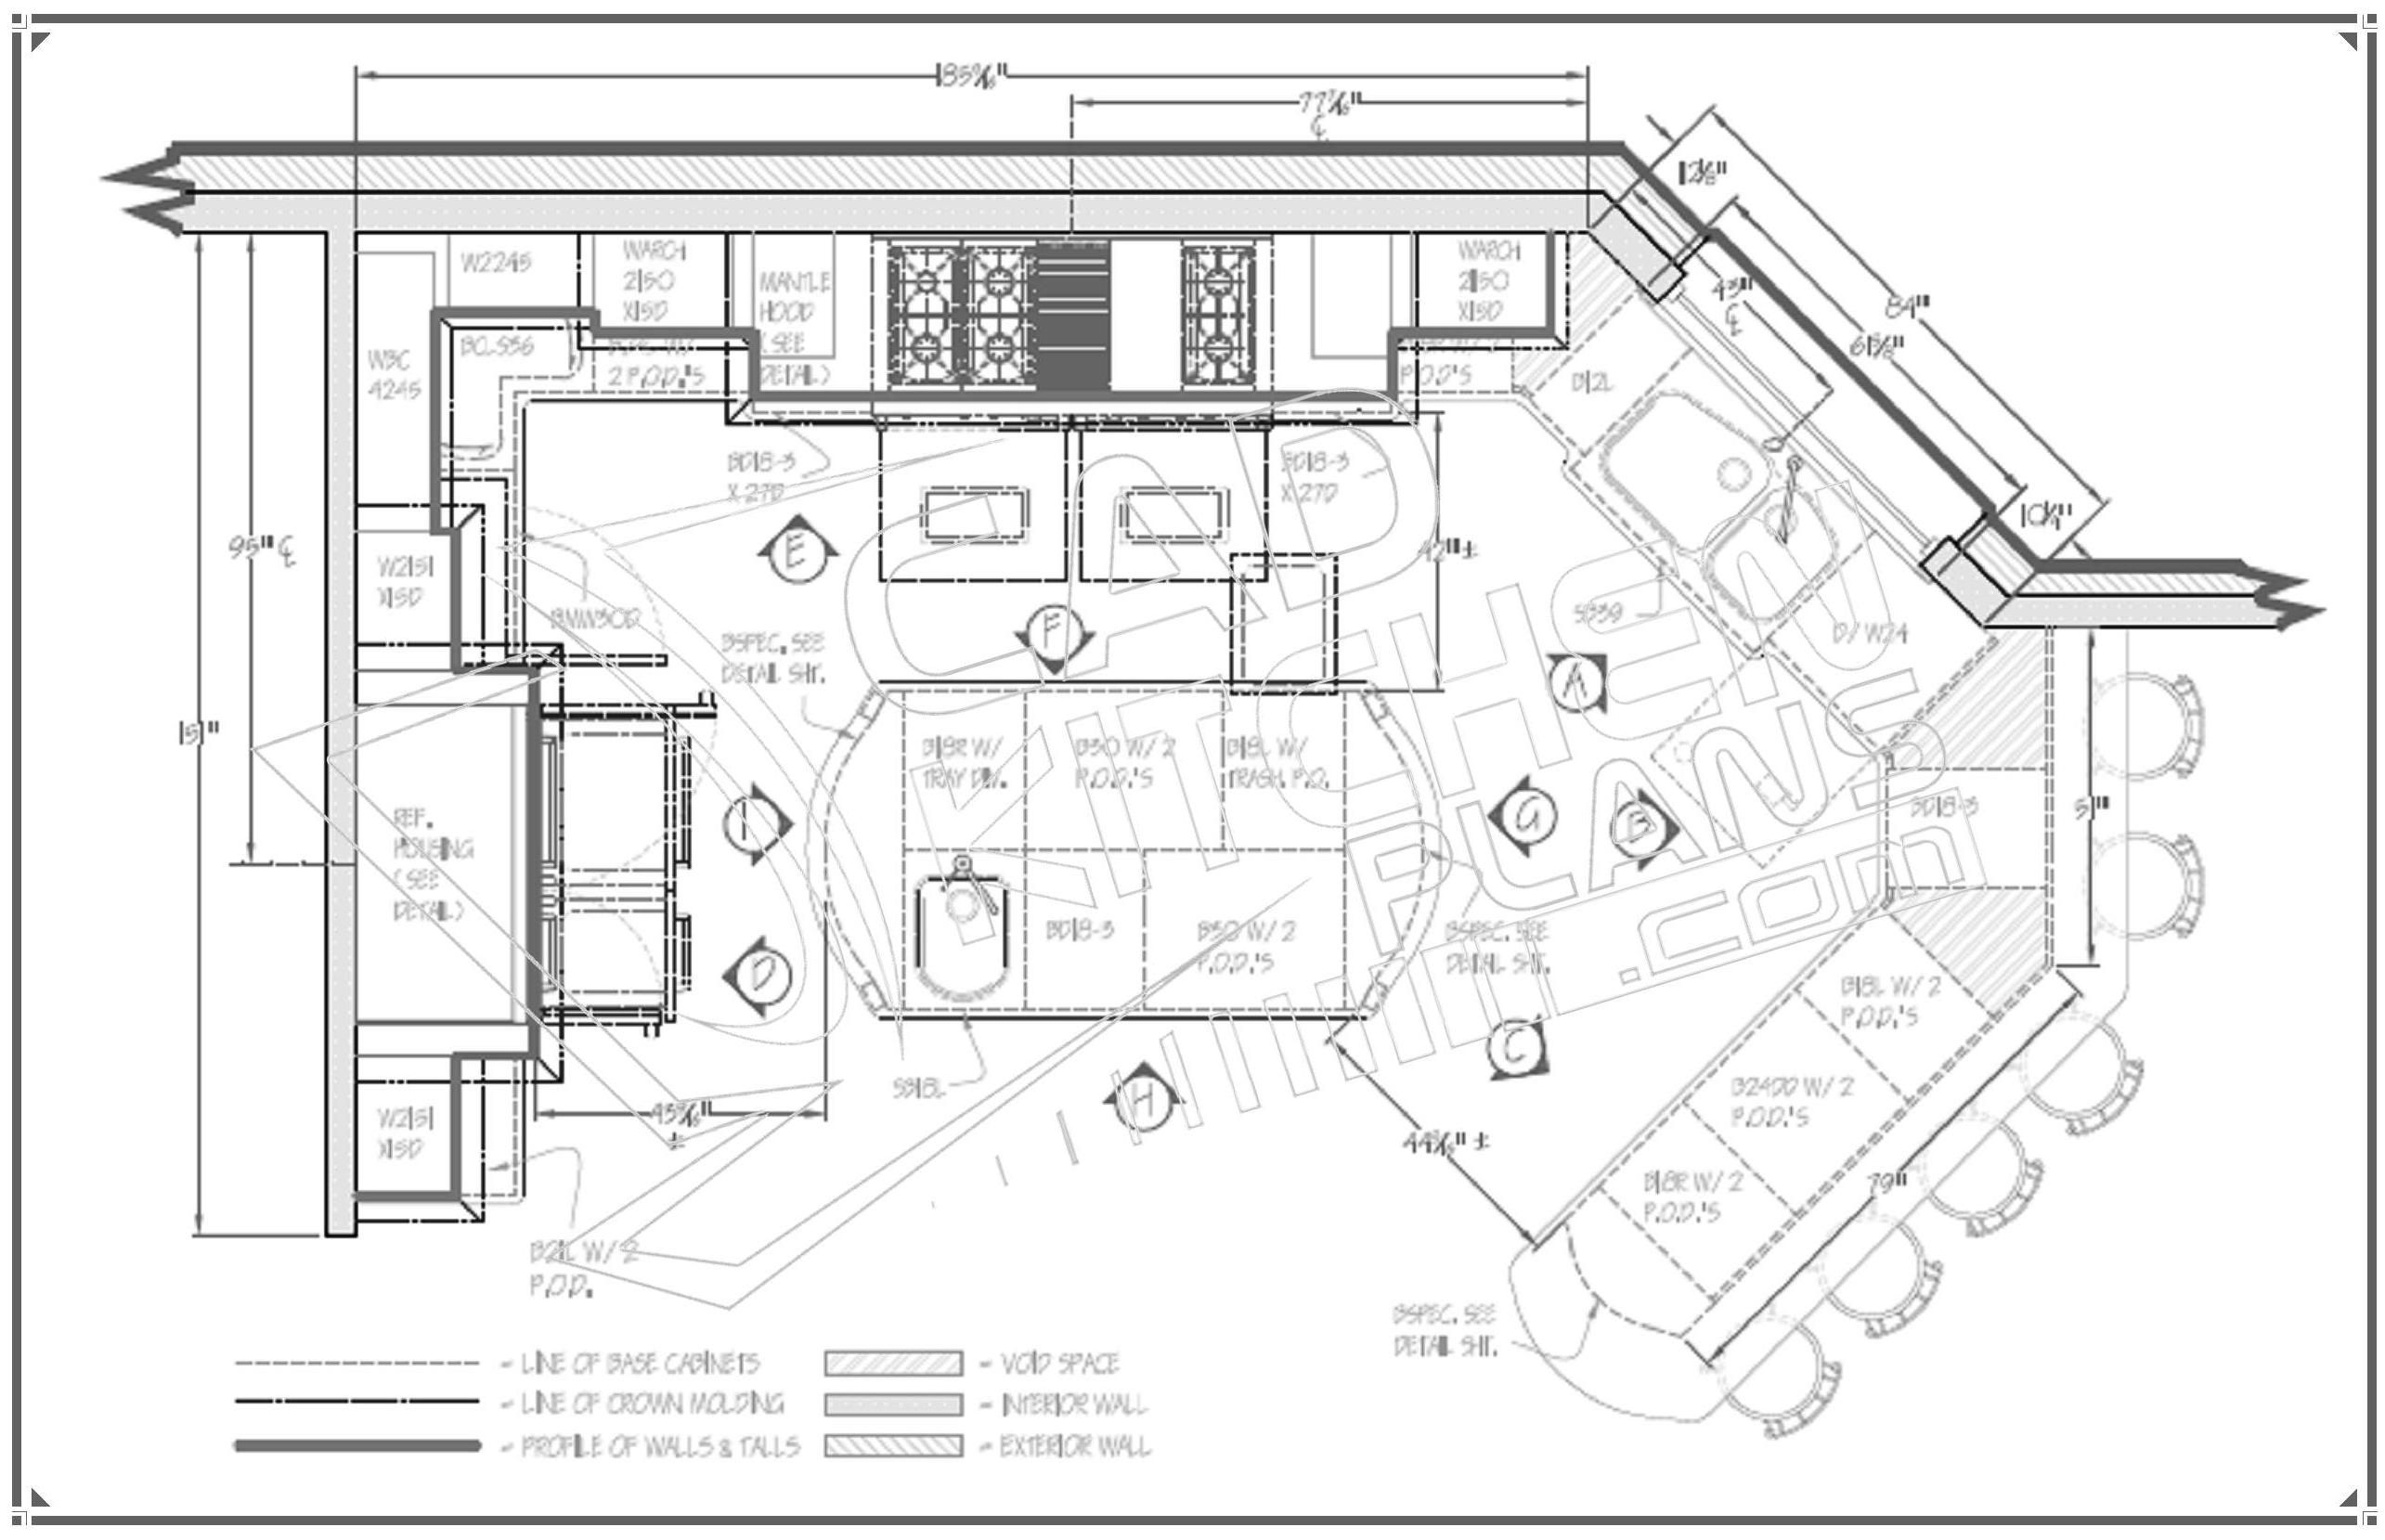 Kitchen Floor Plan kitchen layouts |  kitchen floor plans|kitchen layouts|kitchen